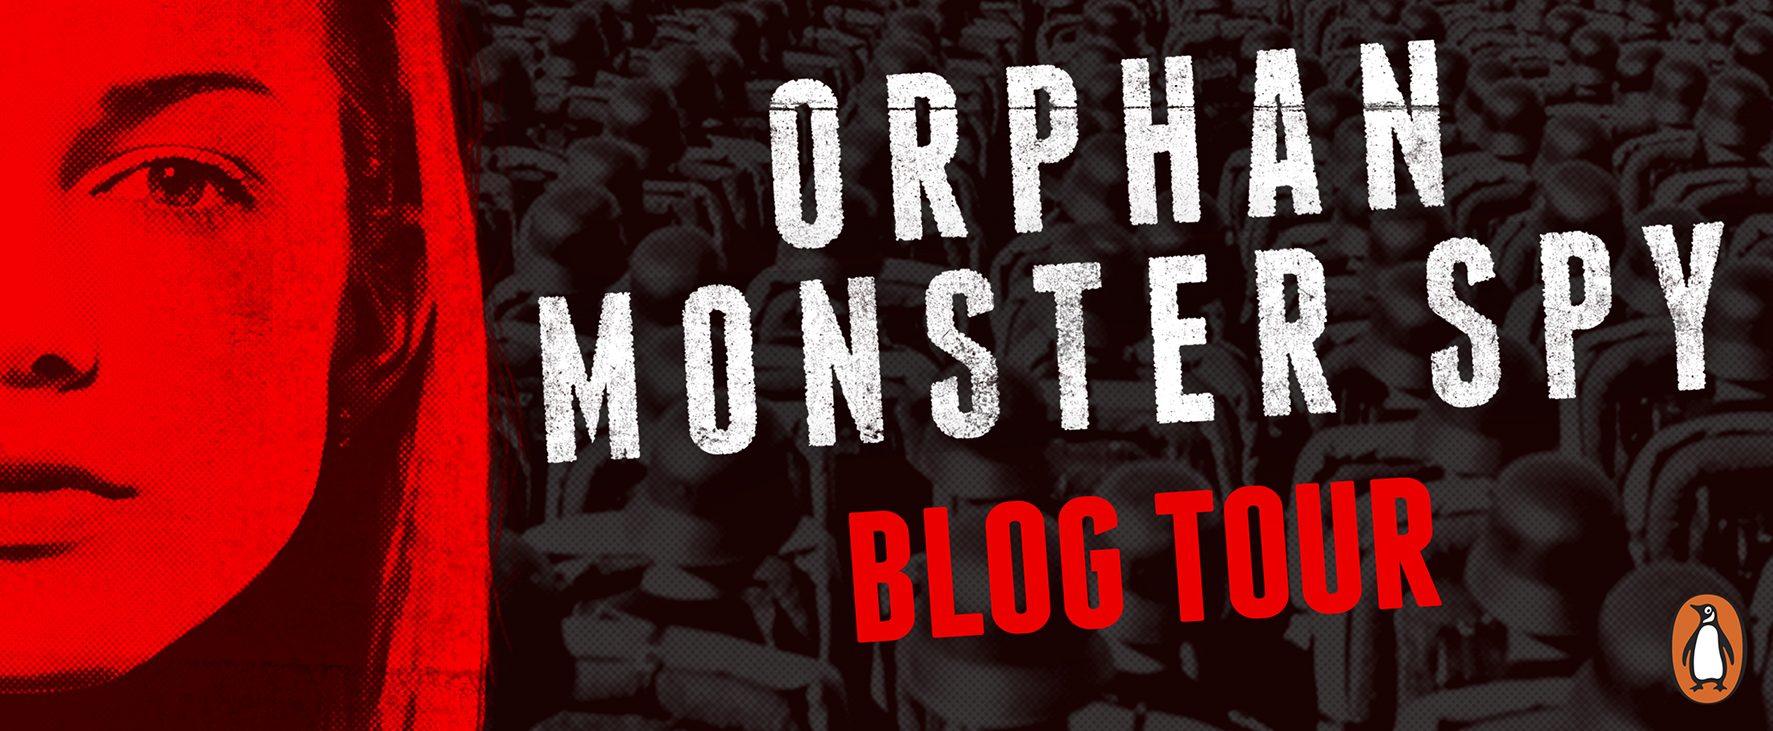 Blog tour orphan monster spy by matt killeen review heres to book tour malvernweather Choice Image